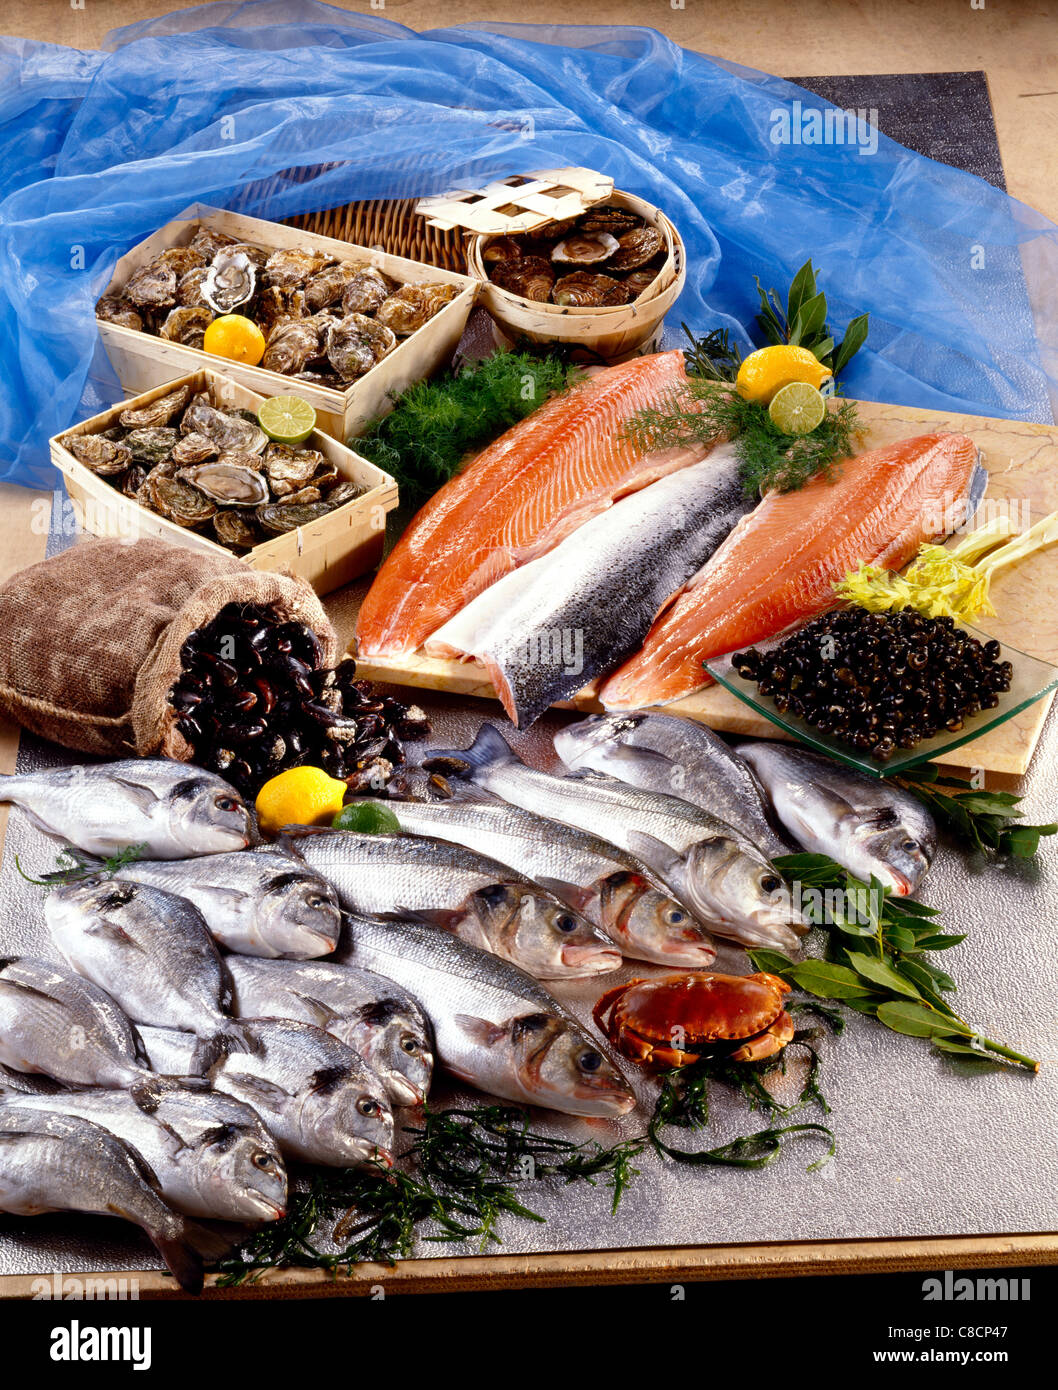 Fresh fish and seafood stock photo royalty free image for Fish and seafood